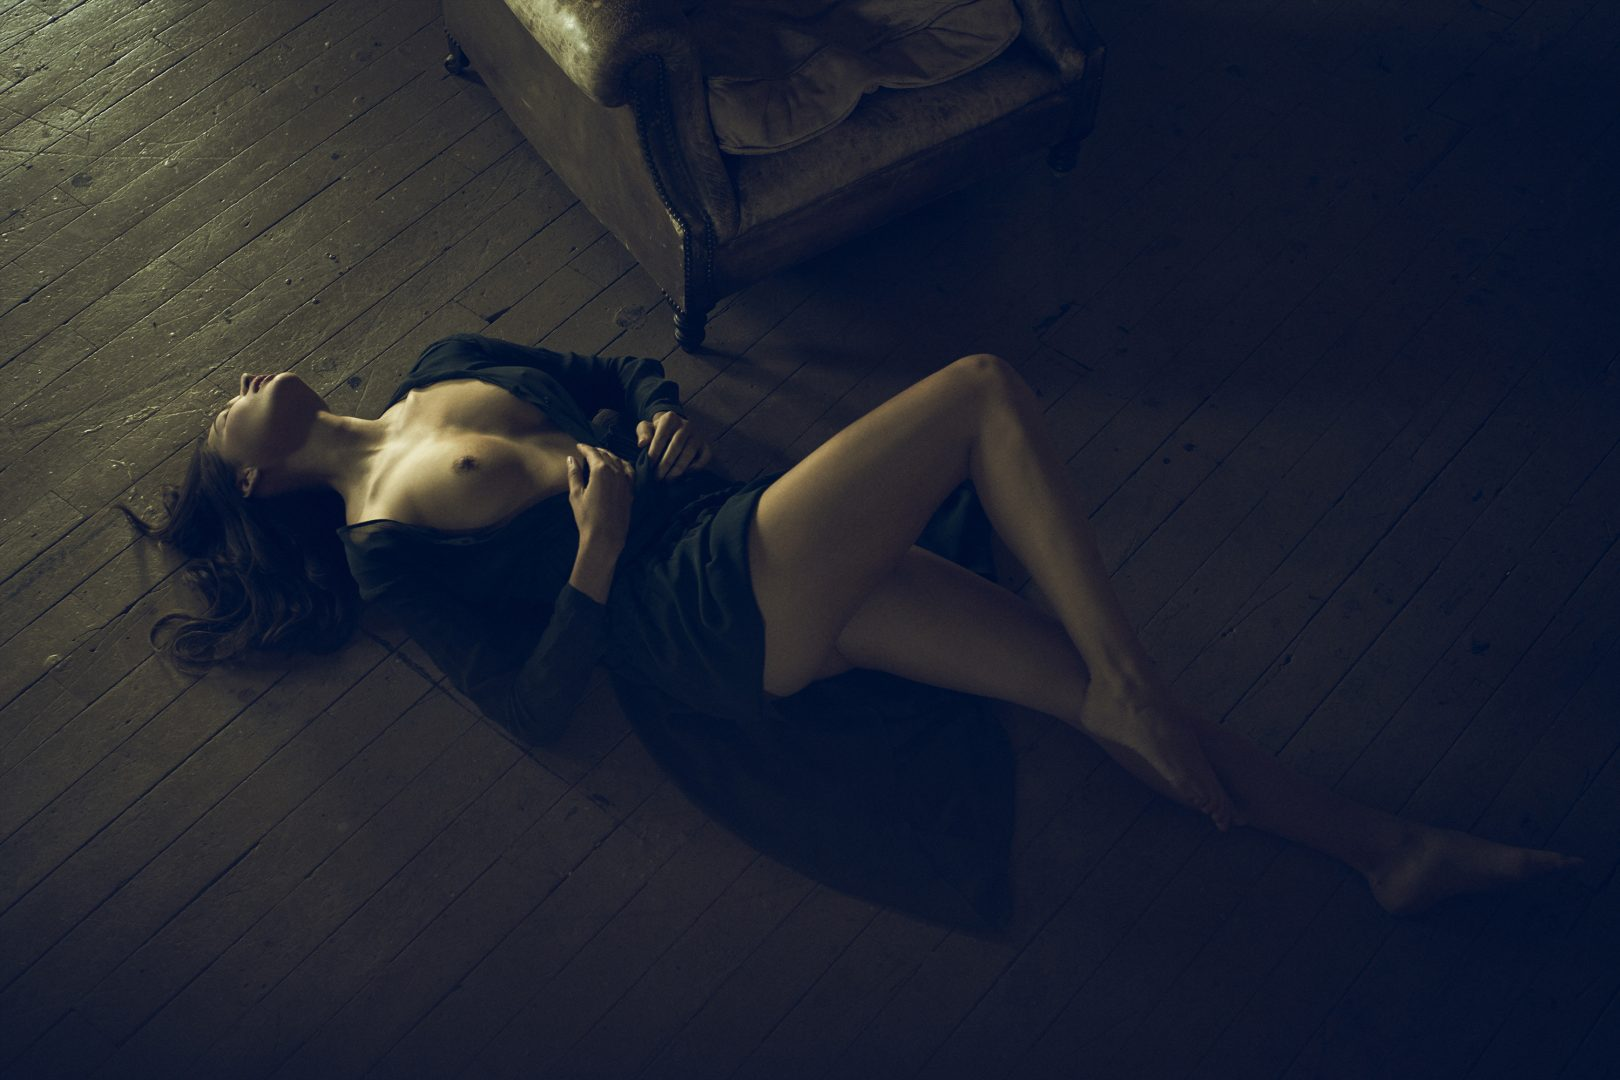 Girl lying on floor next to chair by Stefan Rappo